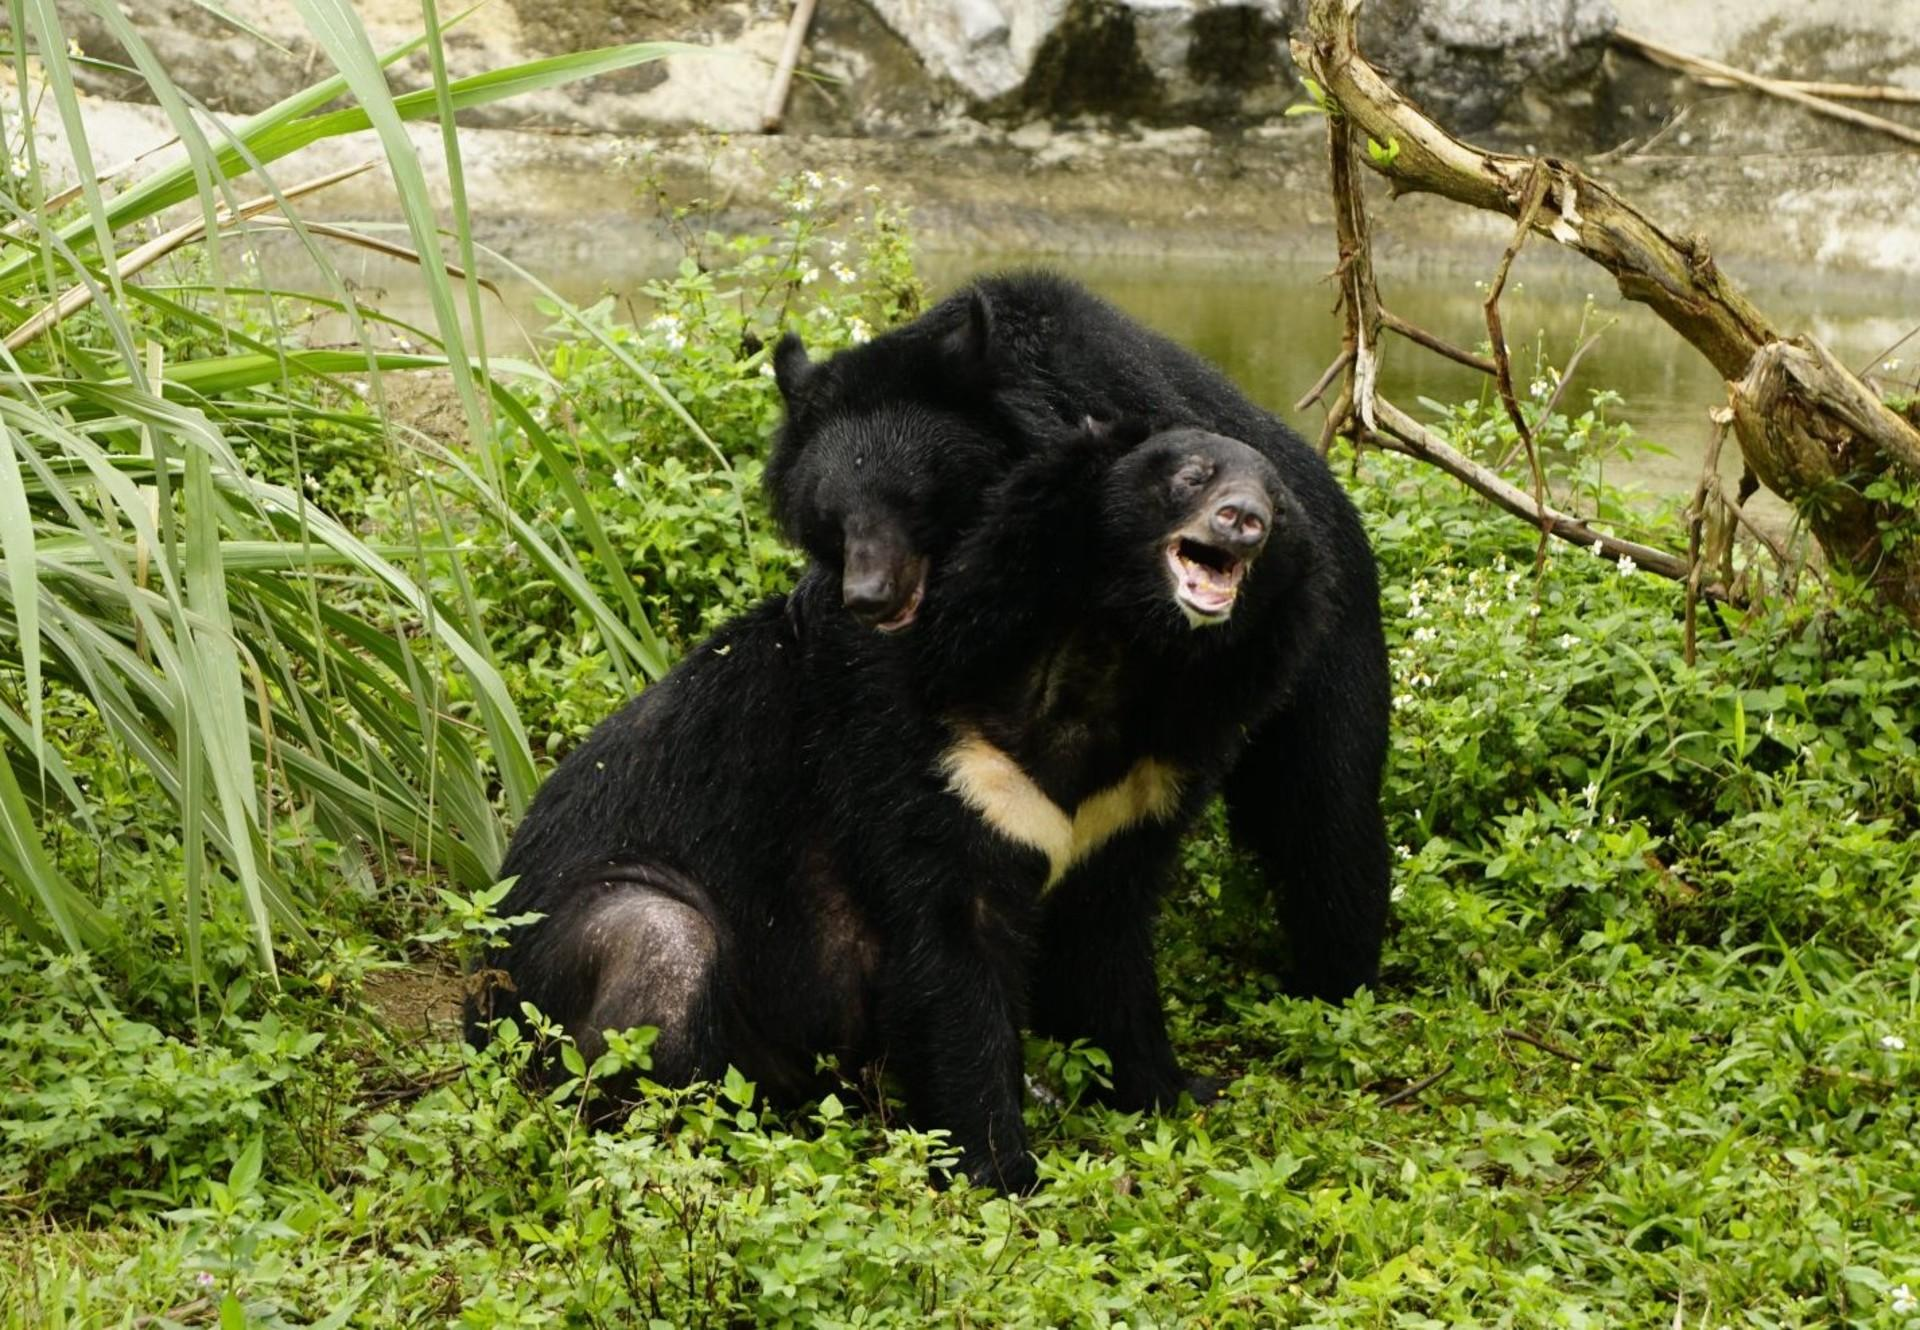 Bears James and Freddie playing